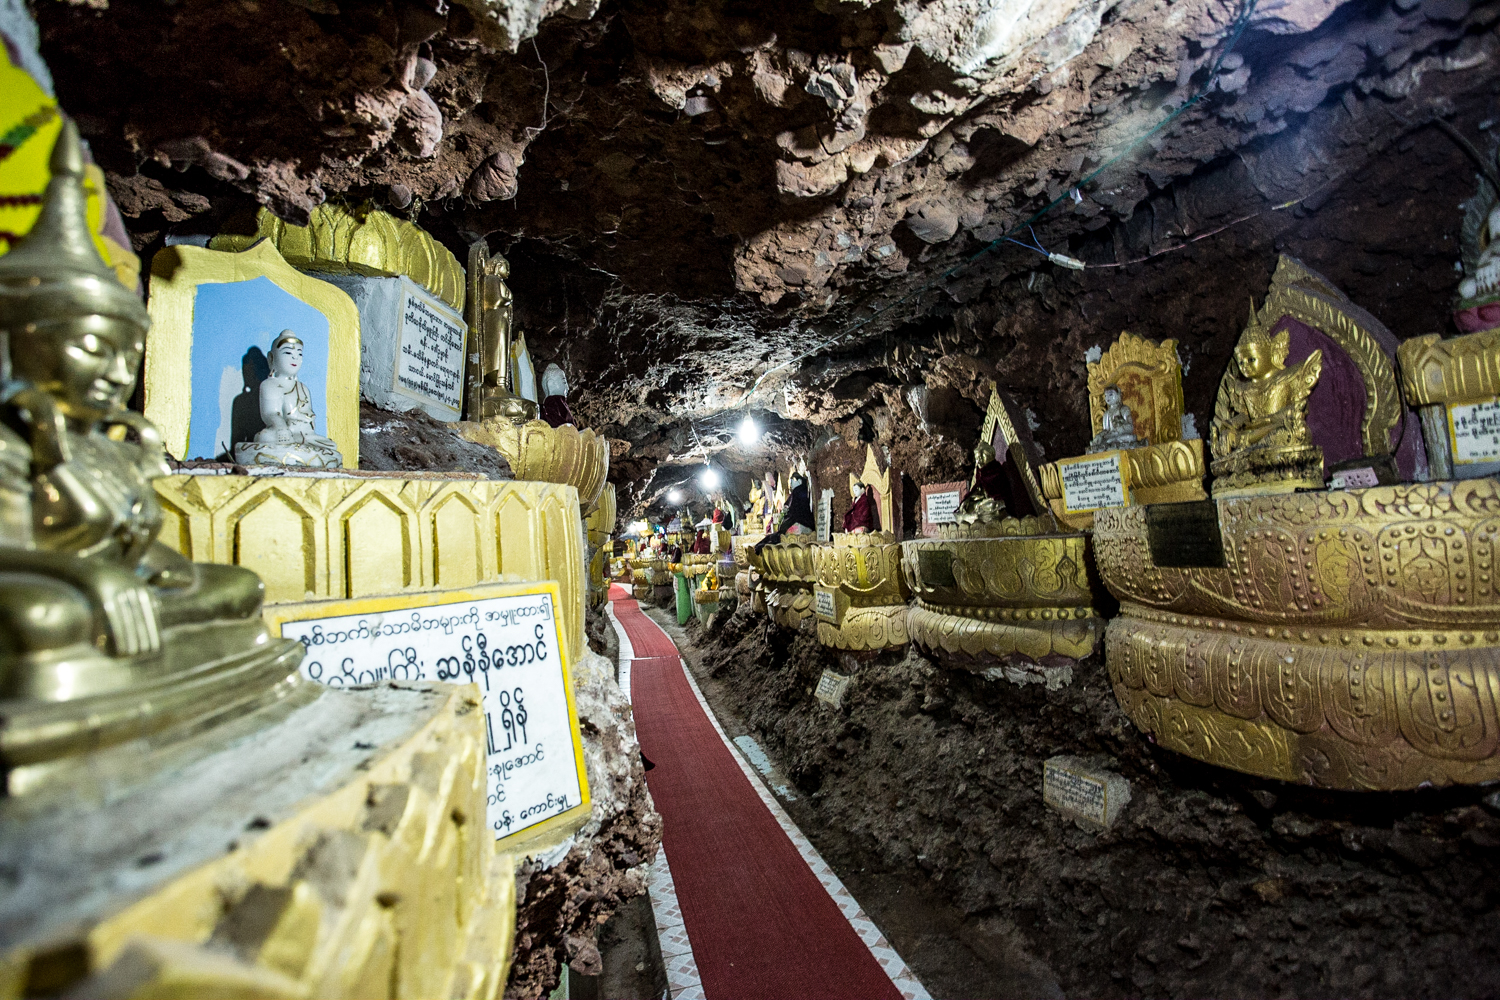 Shwe Oo Min Paya, Myin Ma Hti Cave, suppossedly built more than 2000 years ago, features thousands of Buddha statuettes.